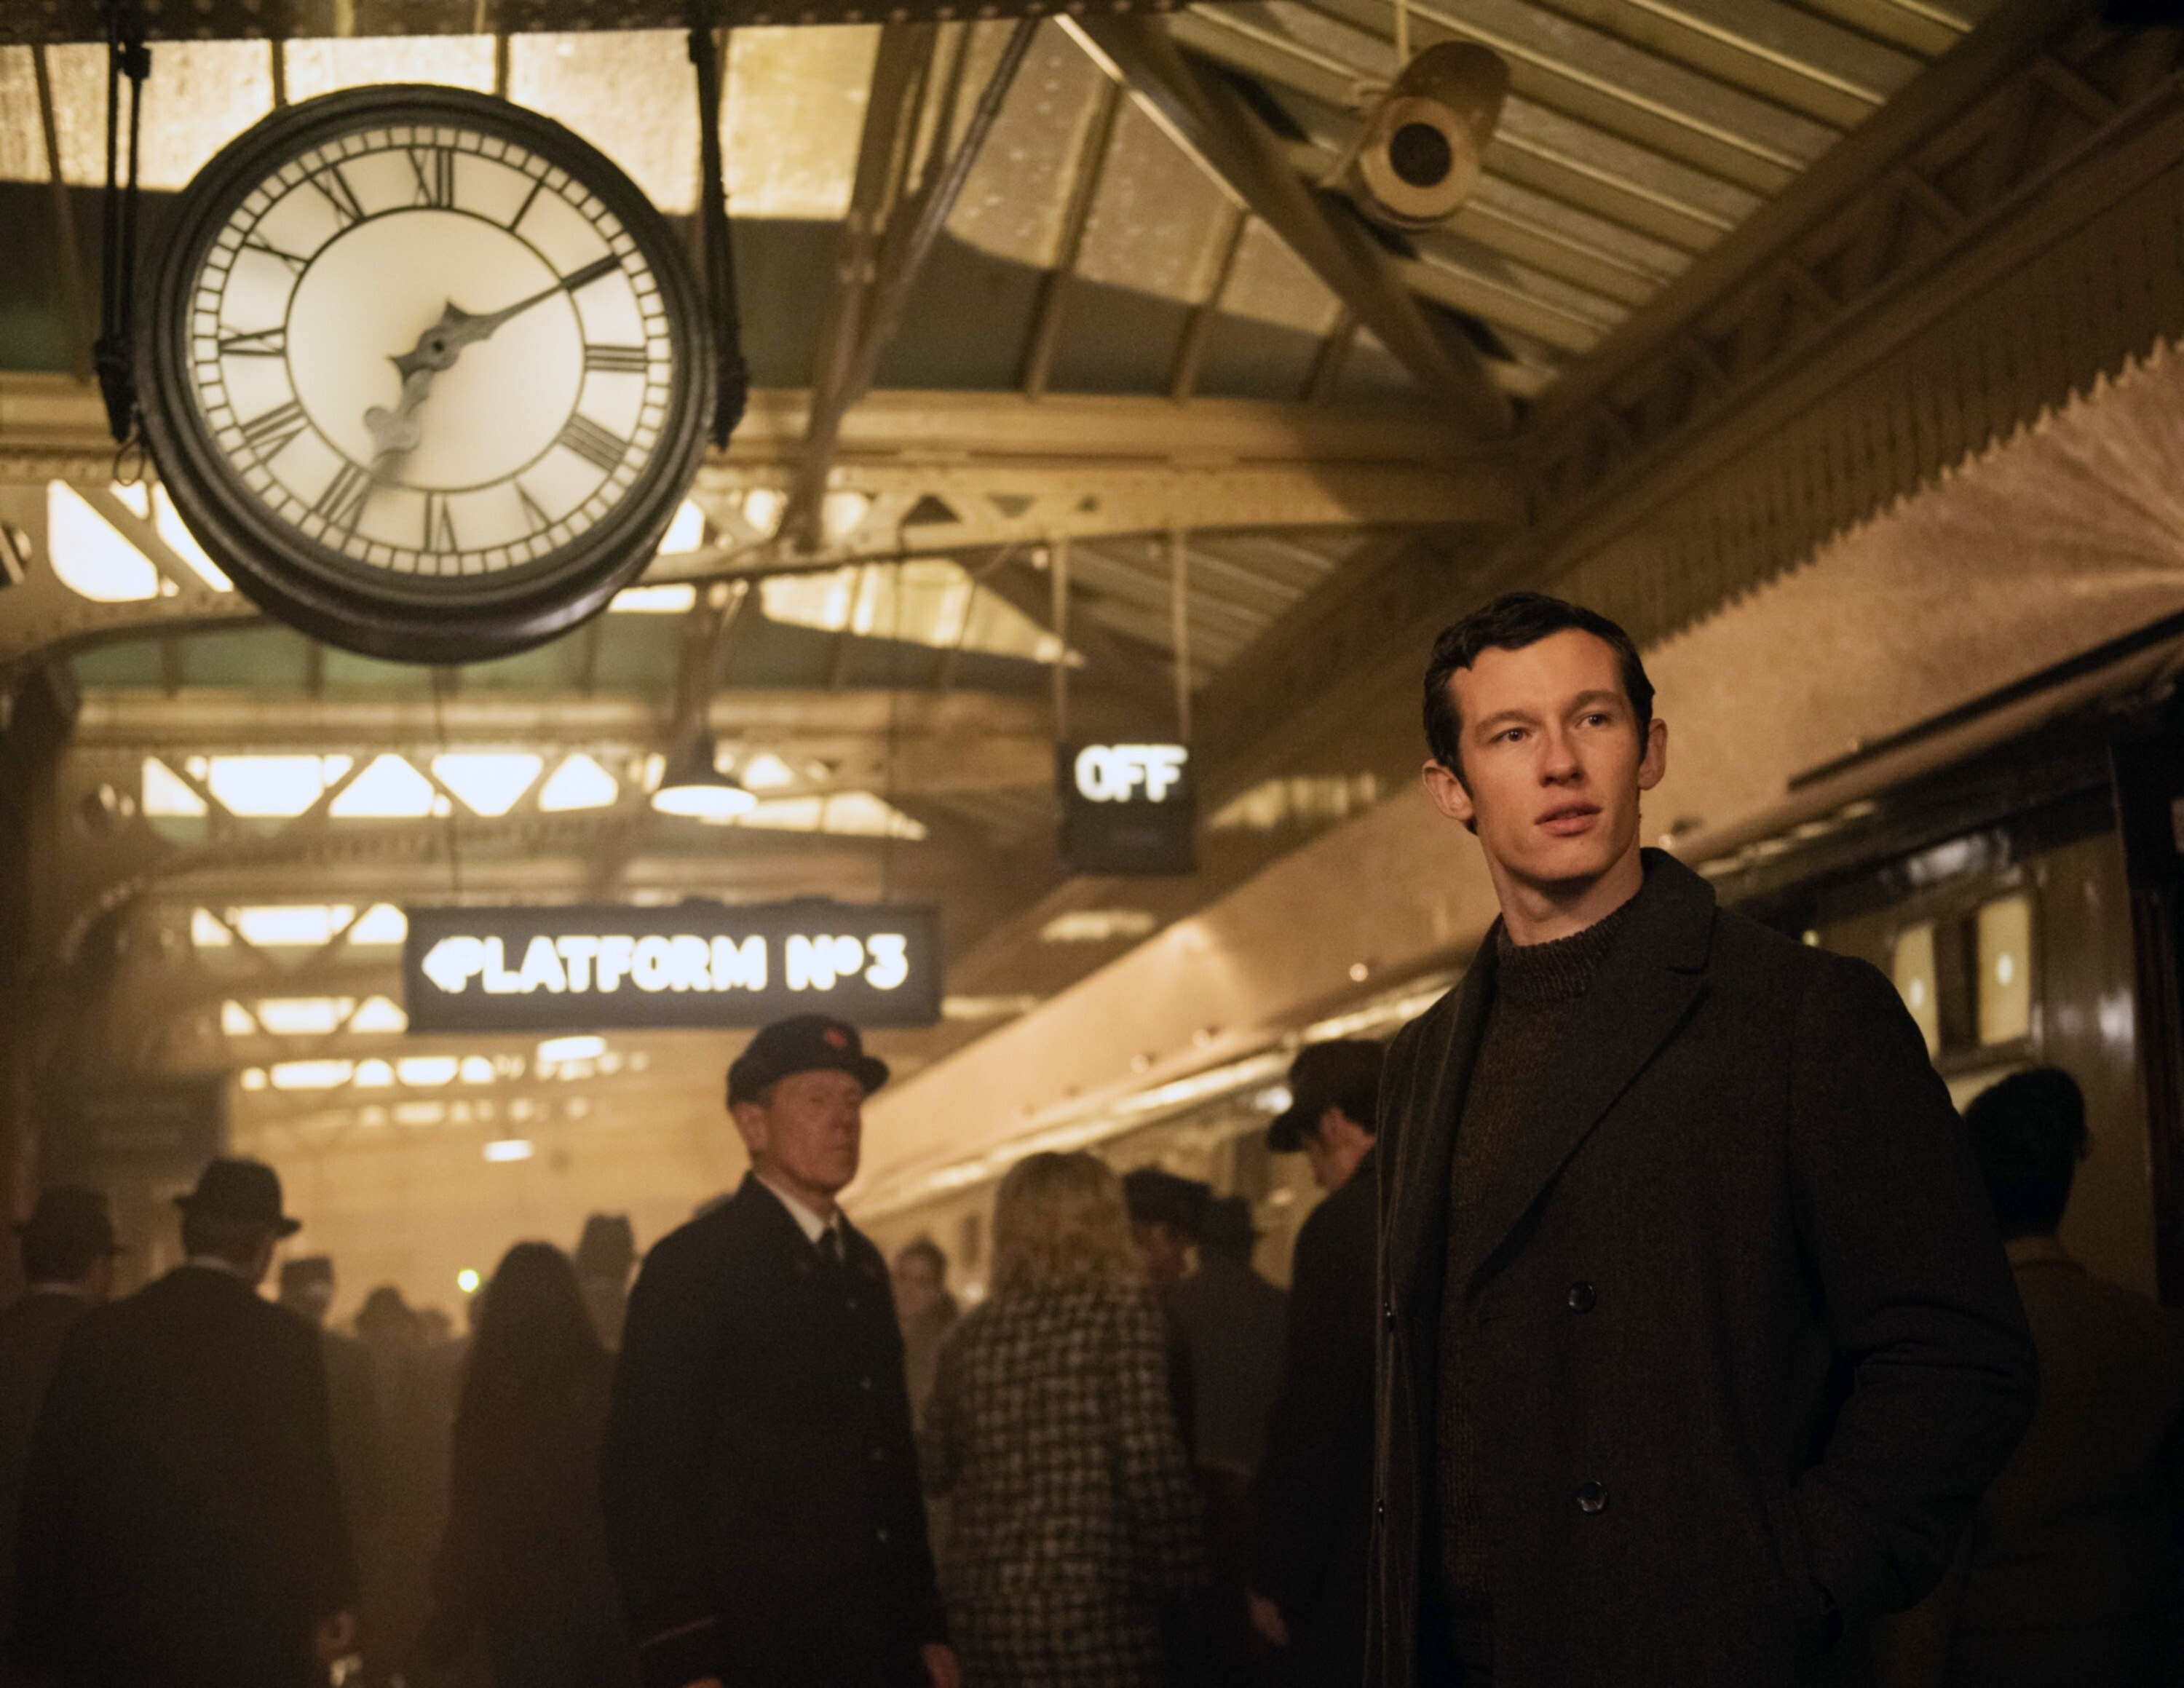 Anthony in a busy train station looking nervous, a large clock with Roman numerals above him to the left